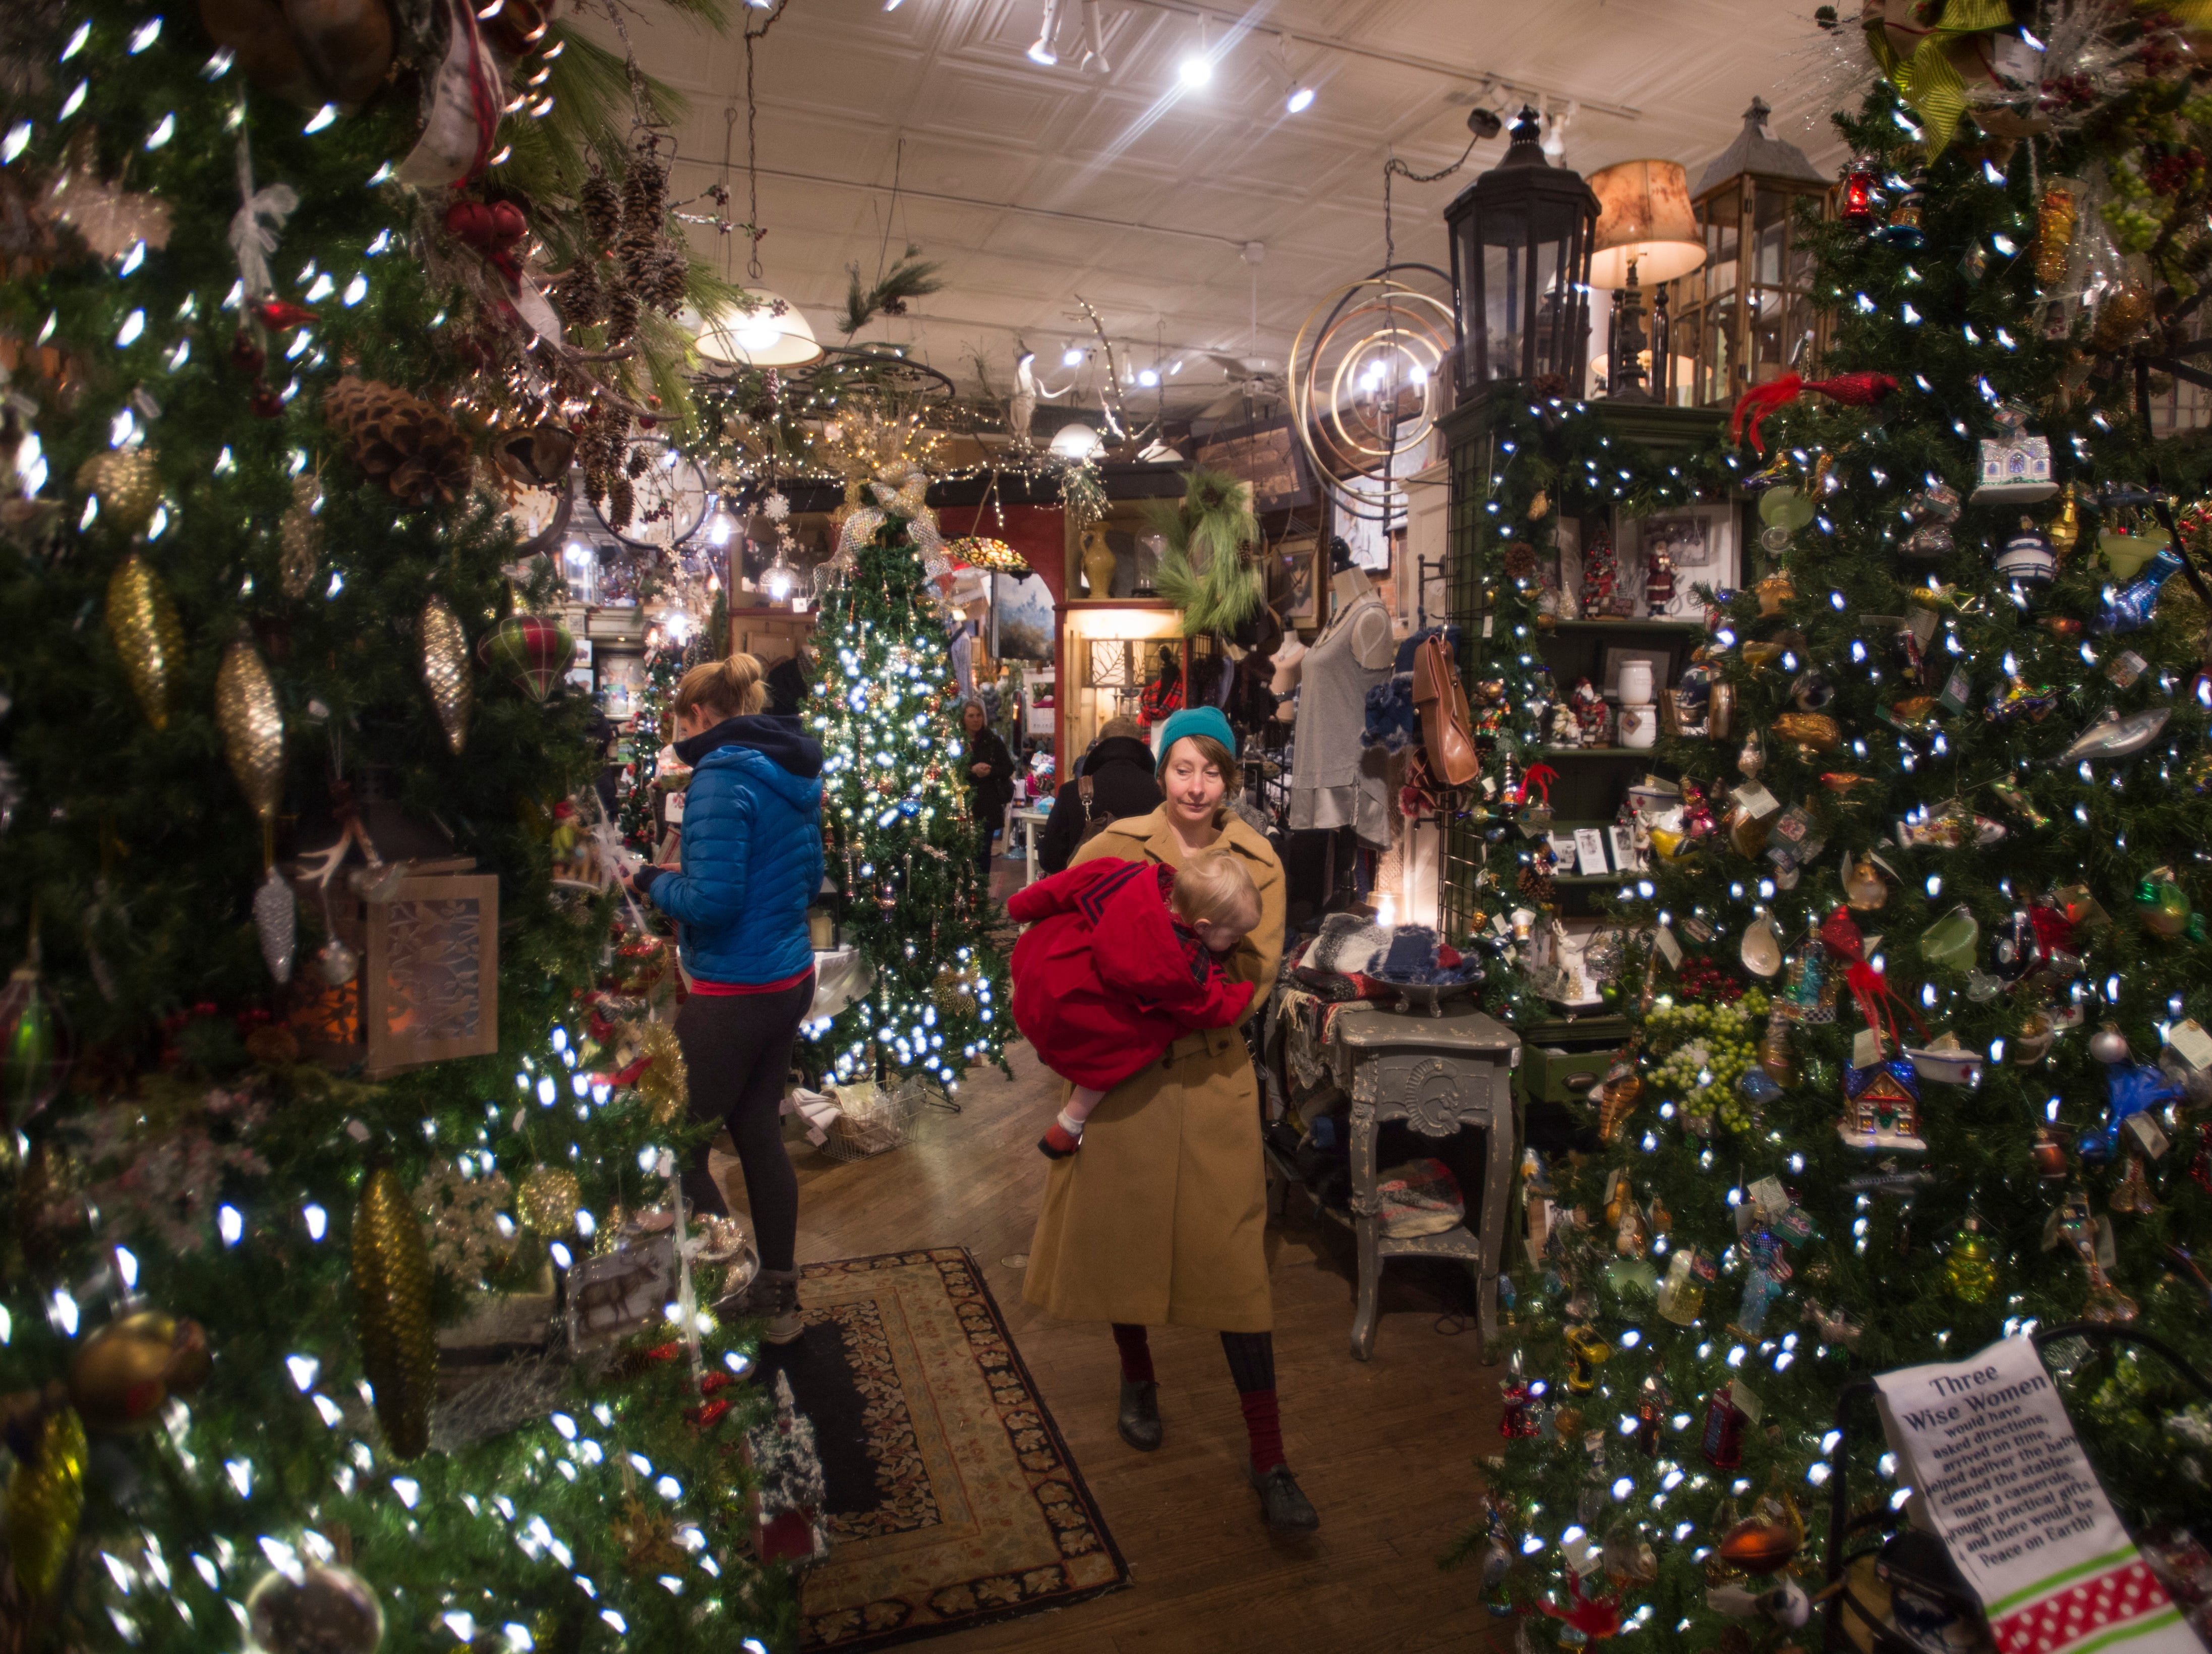 Natalie Scarlett carries her daughter, Imogen Williams, through holiday displays as they try to get some last minute shopping in at The Perennial Gardener in Old Town on Monday, December 24, 2018.